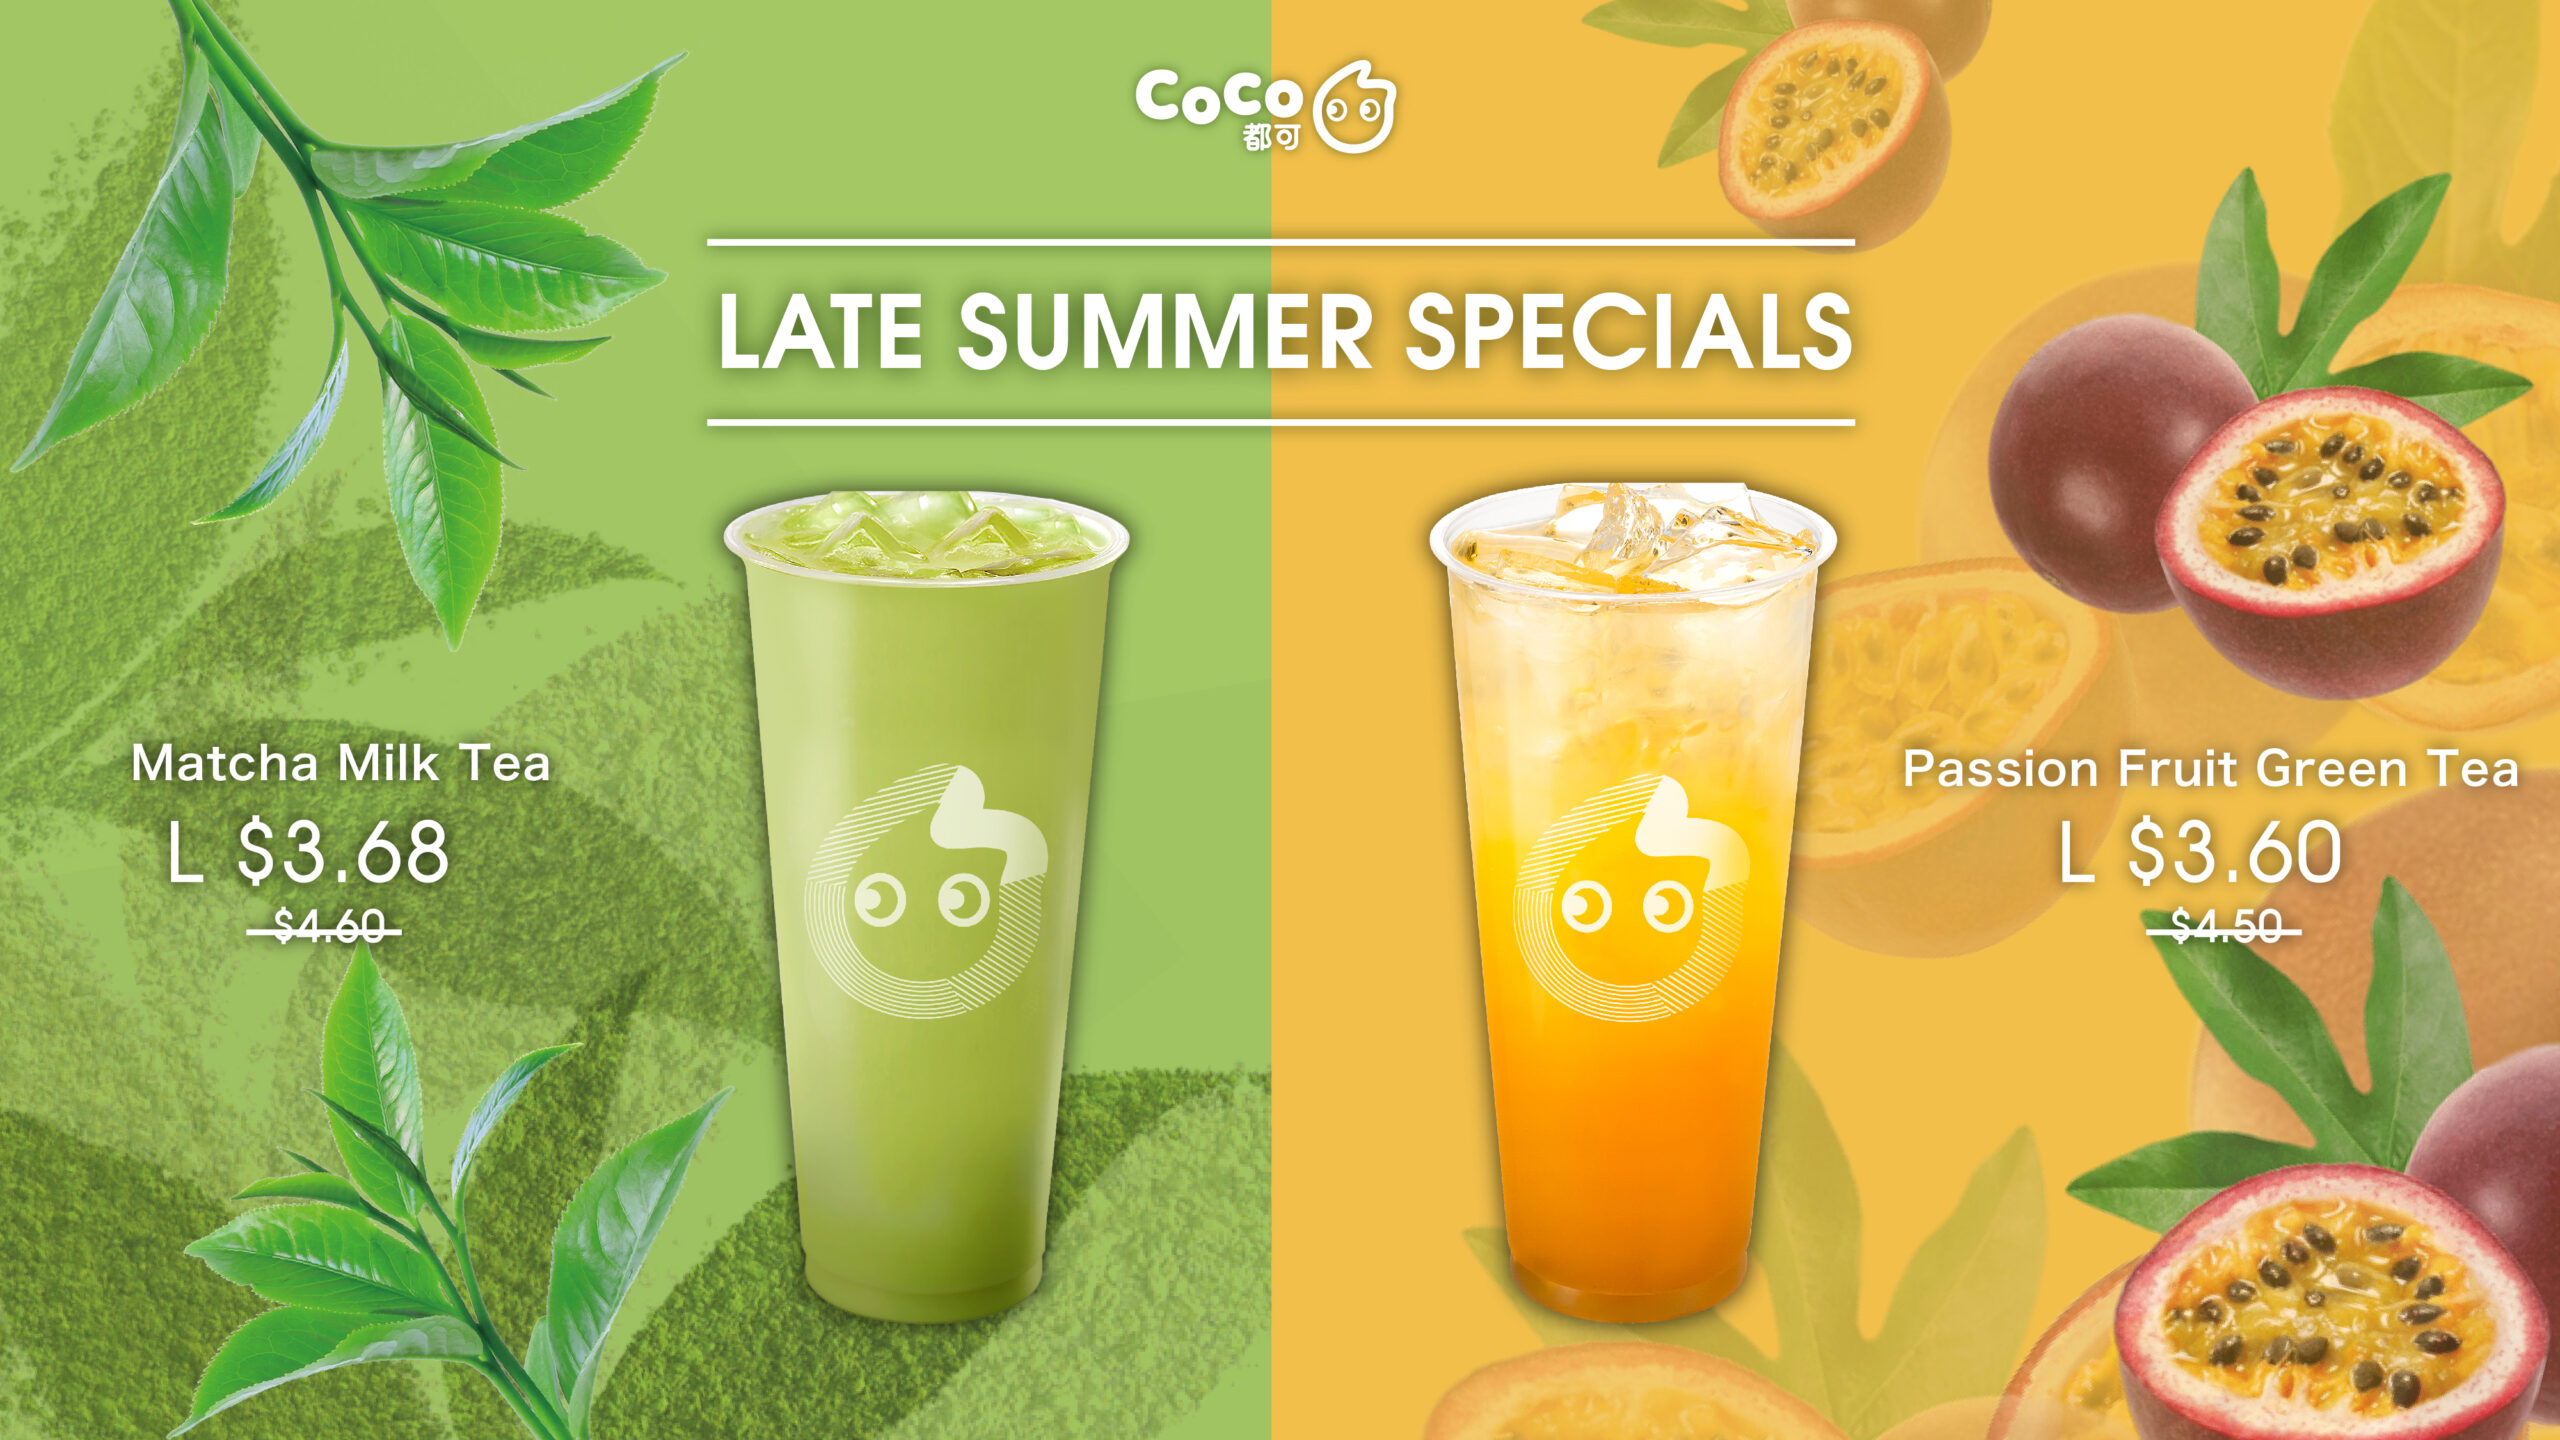 Late Summer Specials - Match Milk Tea and Passion Fruit Green Tea